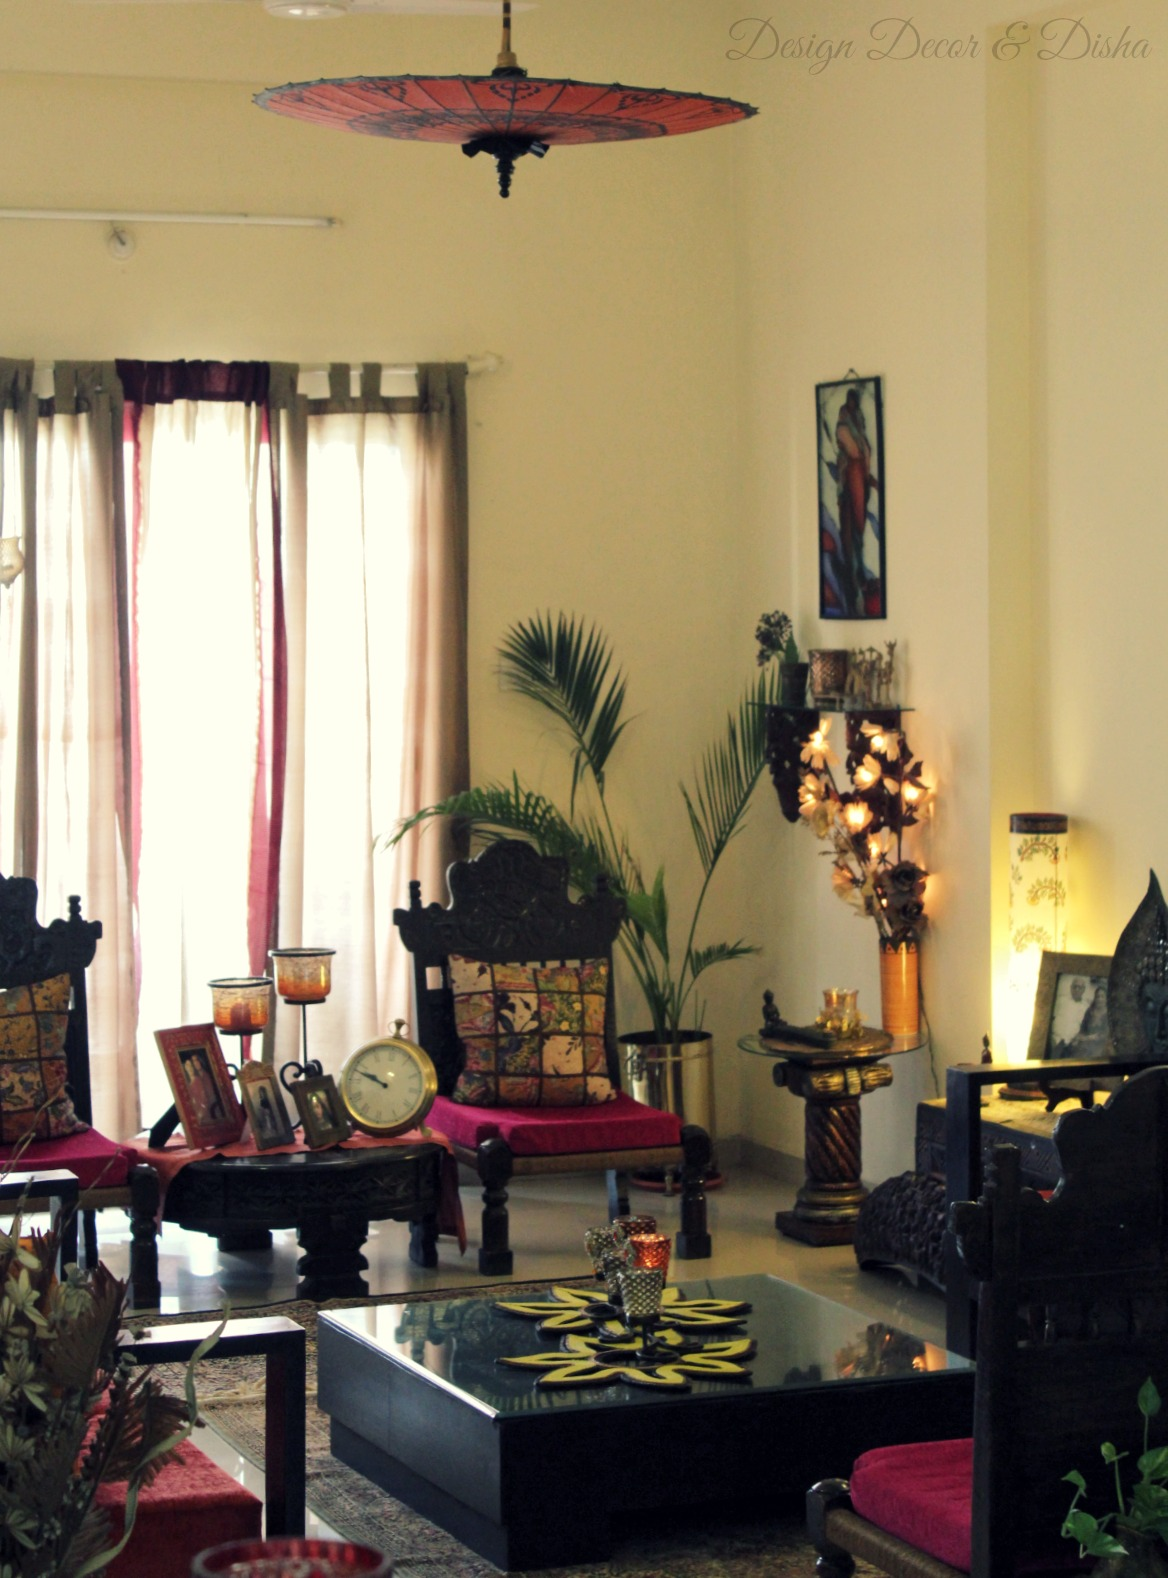 Design decor disha an indian design decor blog home tour kapila banerjee - Decorative items for home ...